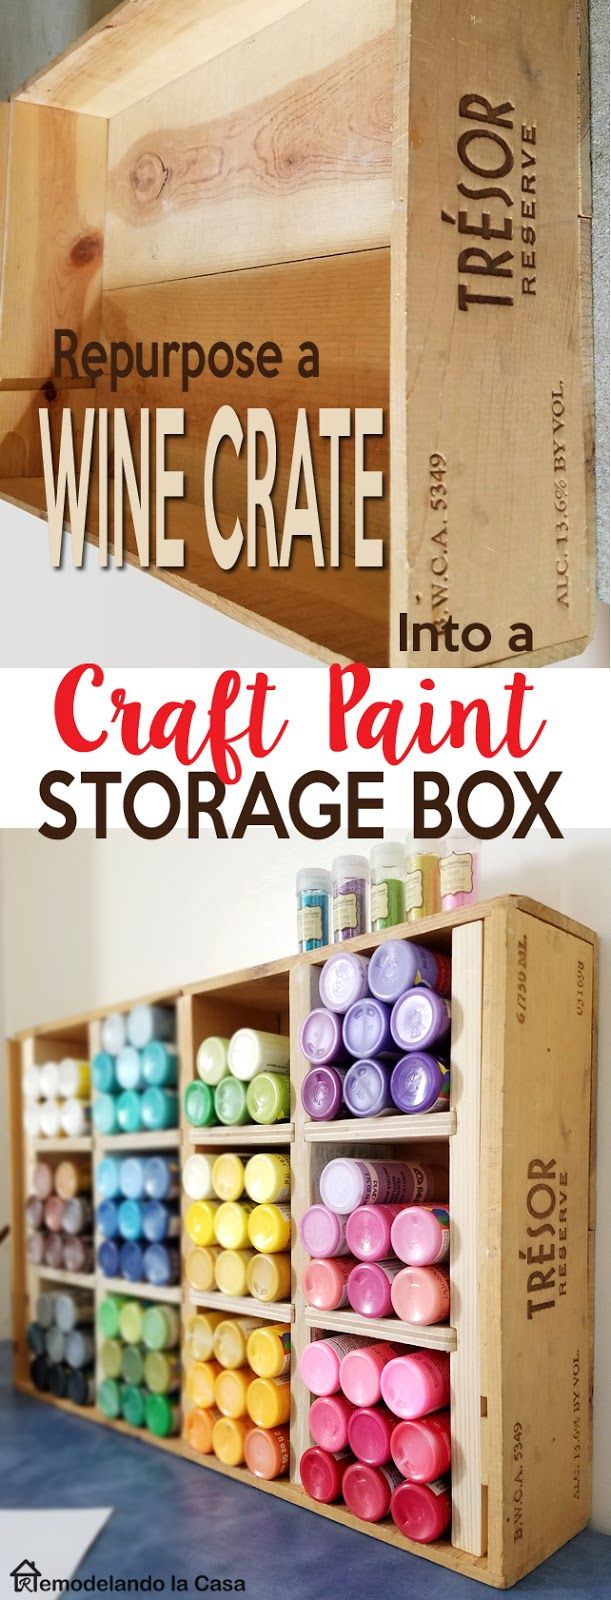 Repurpose a wine crate ---> Craft Paint Storage Box - Craft room organization